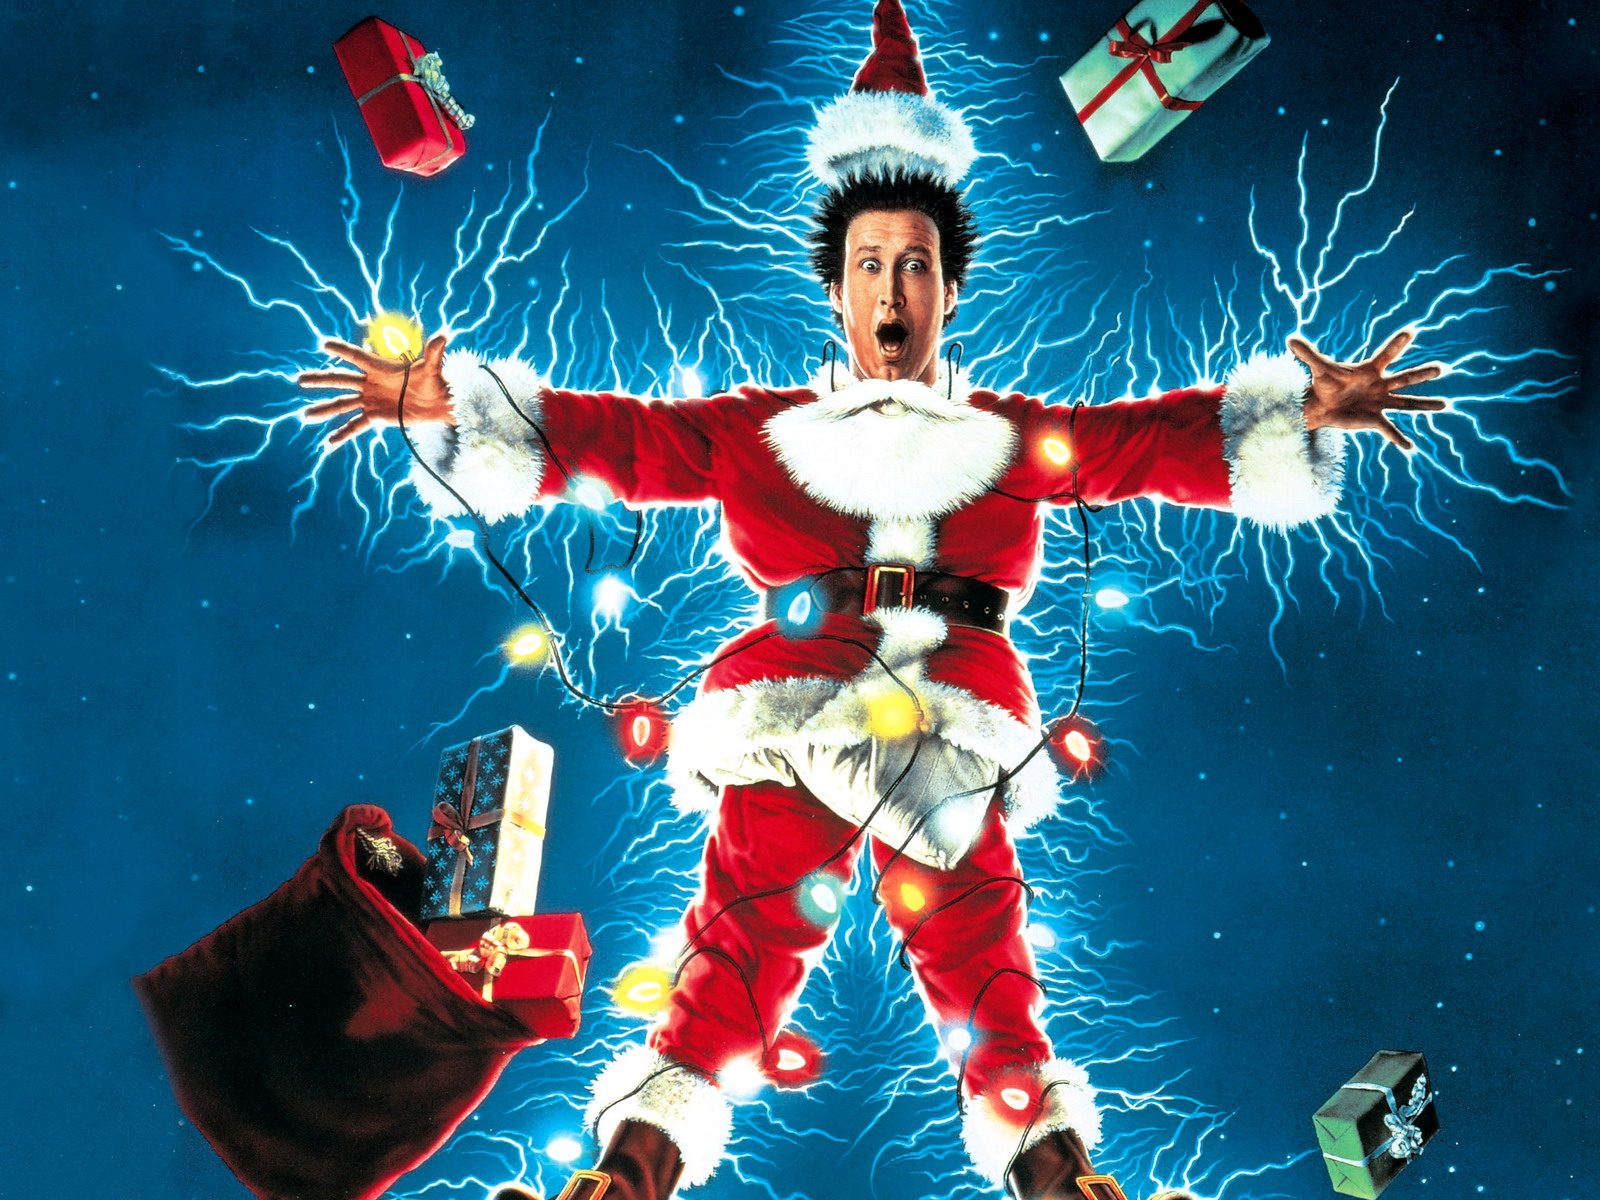 Christmas Vacation Wallpaper Wallpapers9 1600x1200